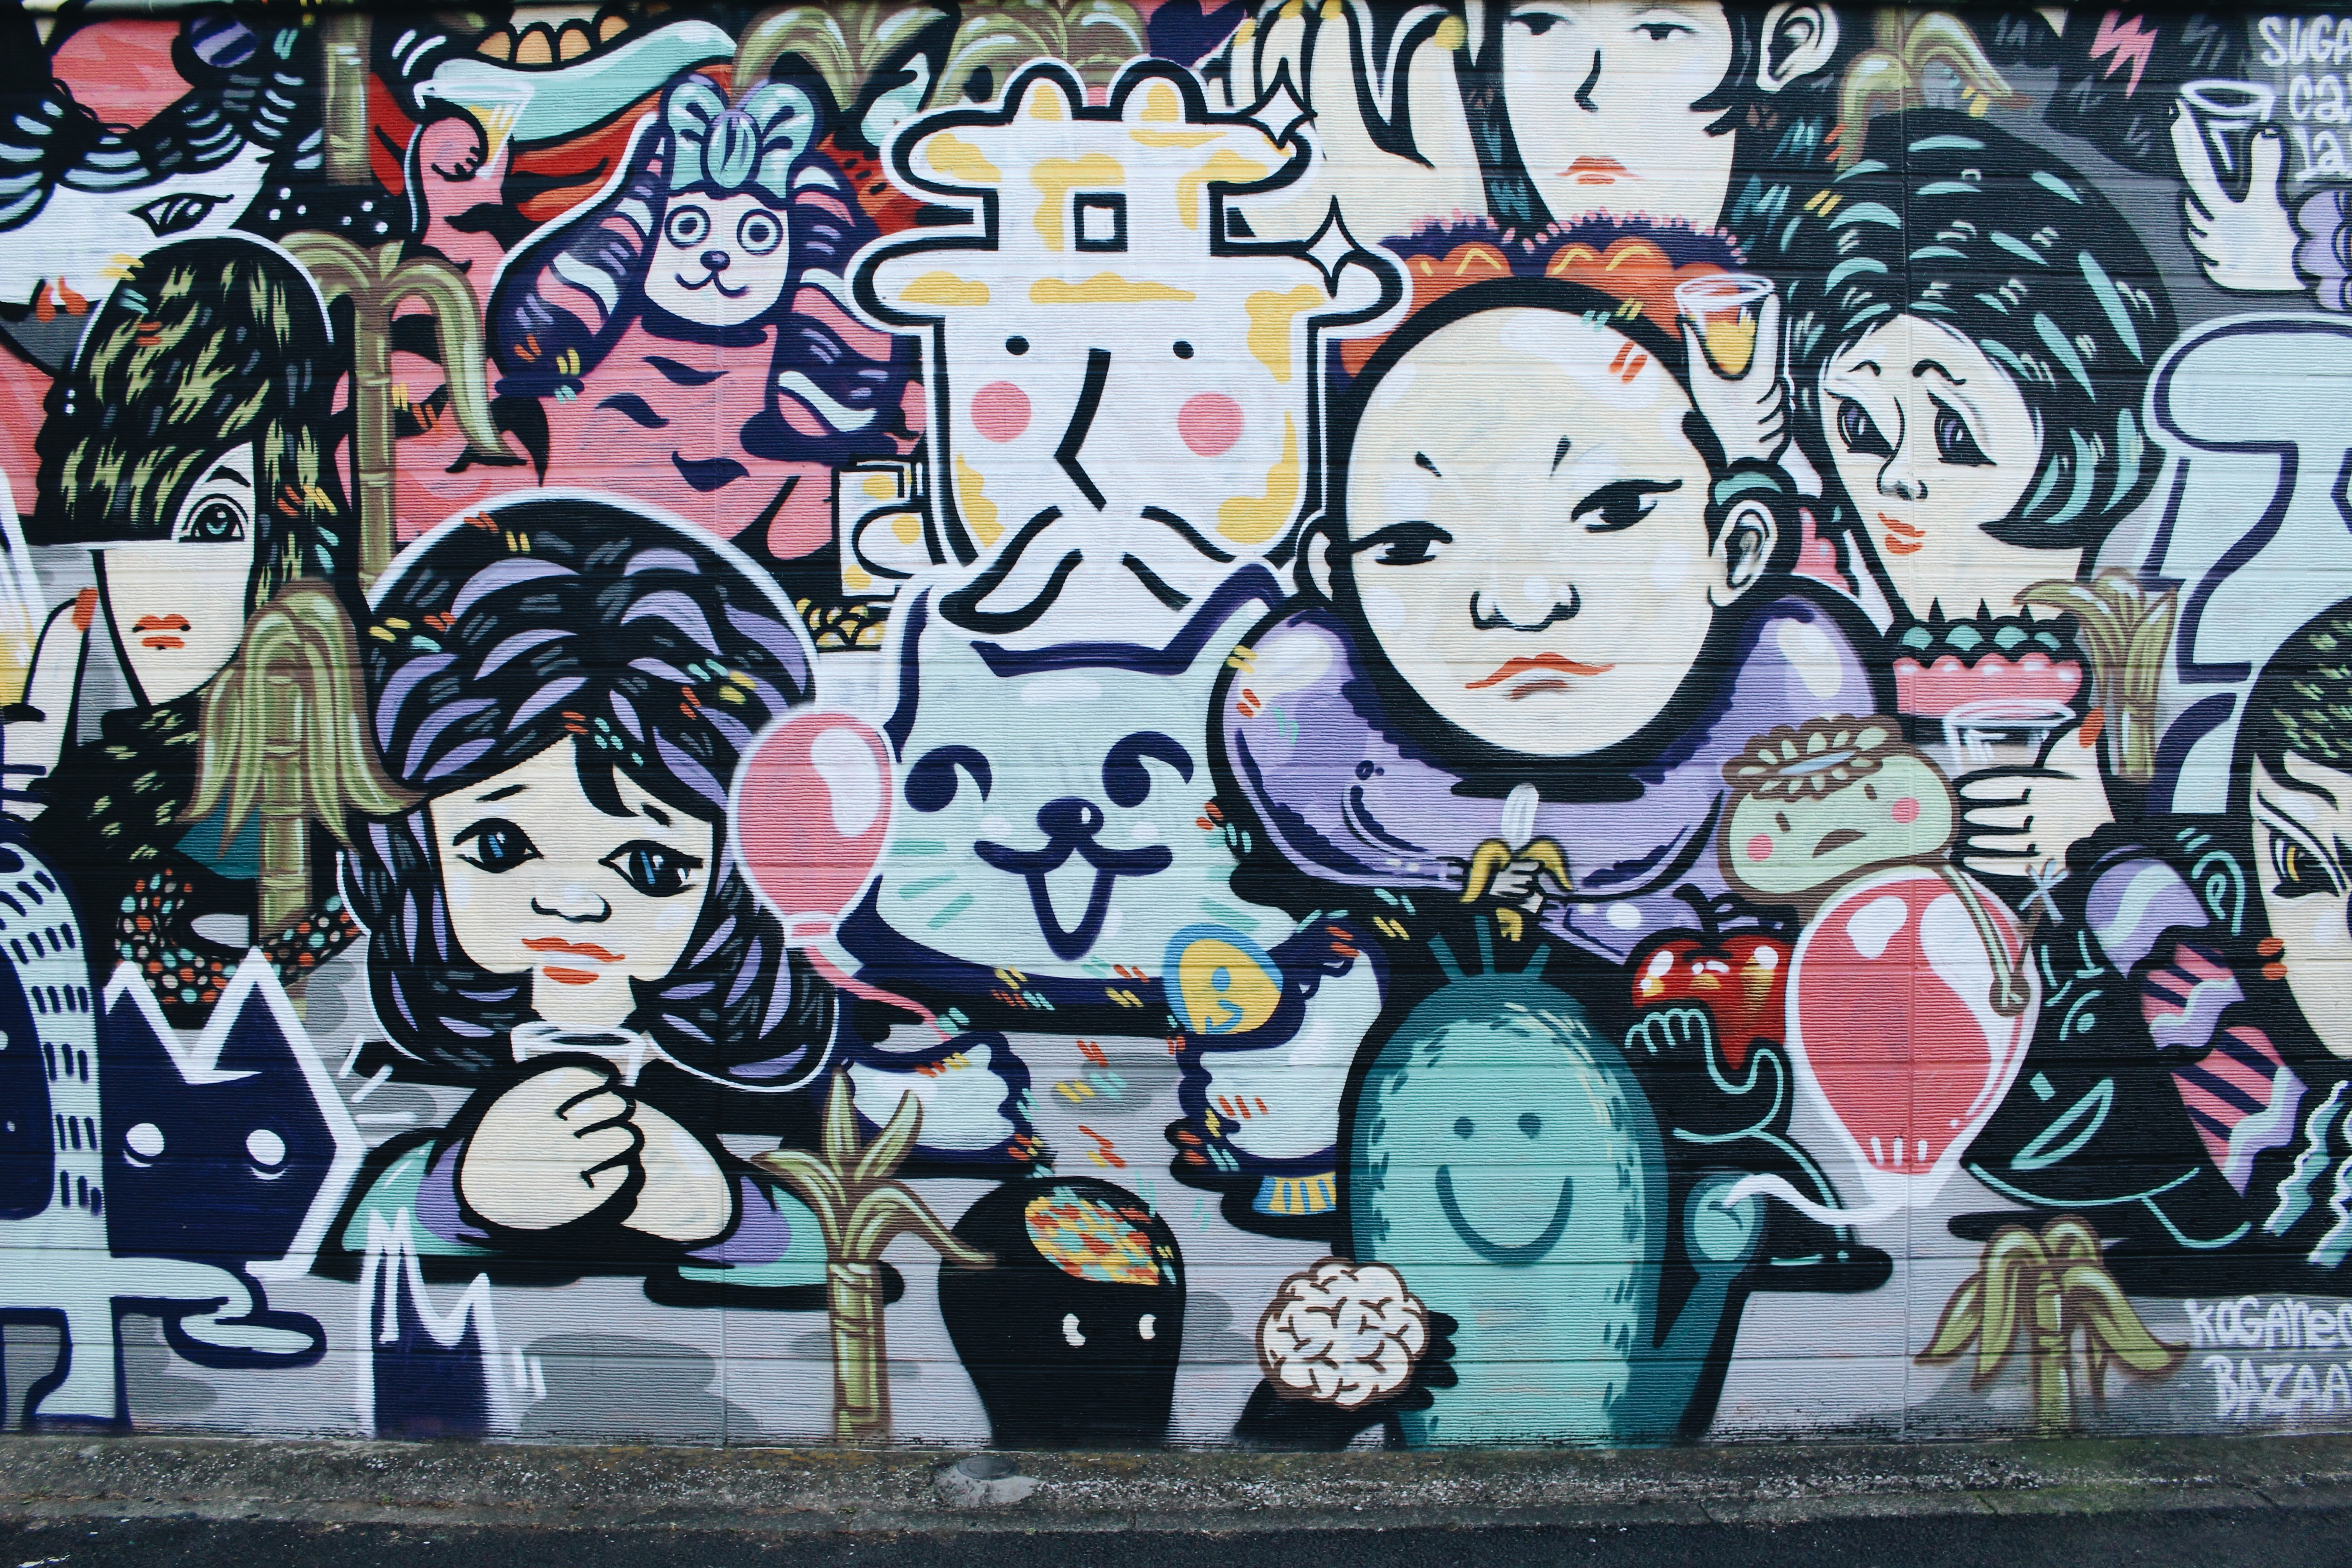 A group of cartoon characters painted on a wall mural.